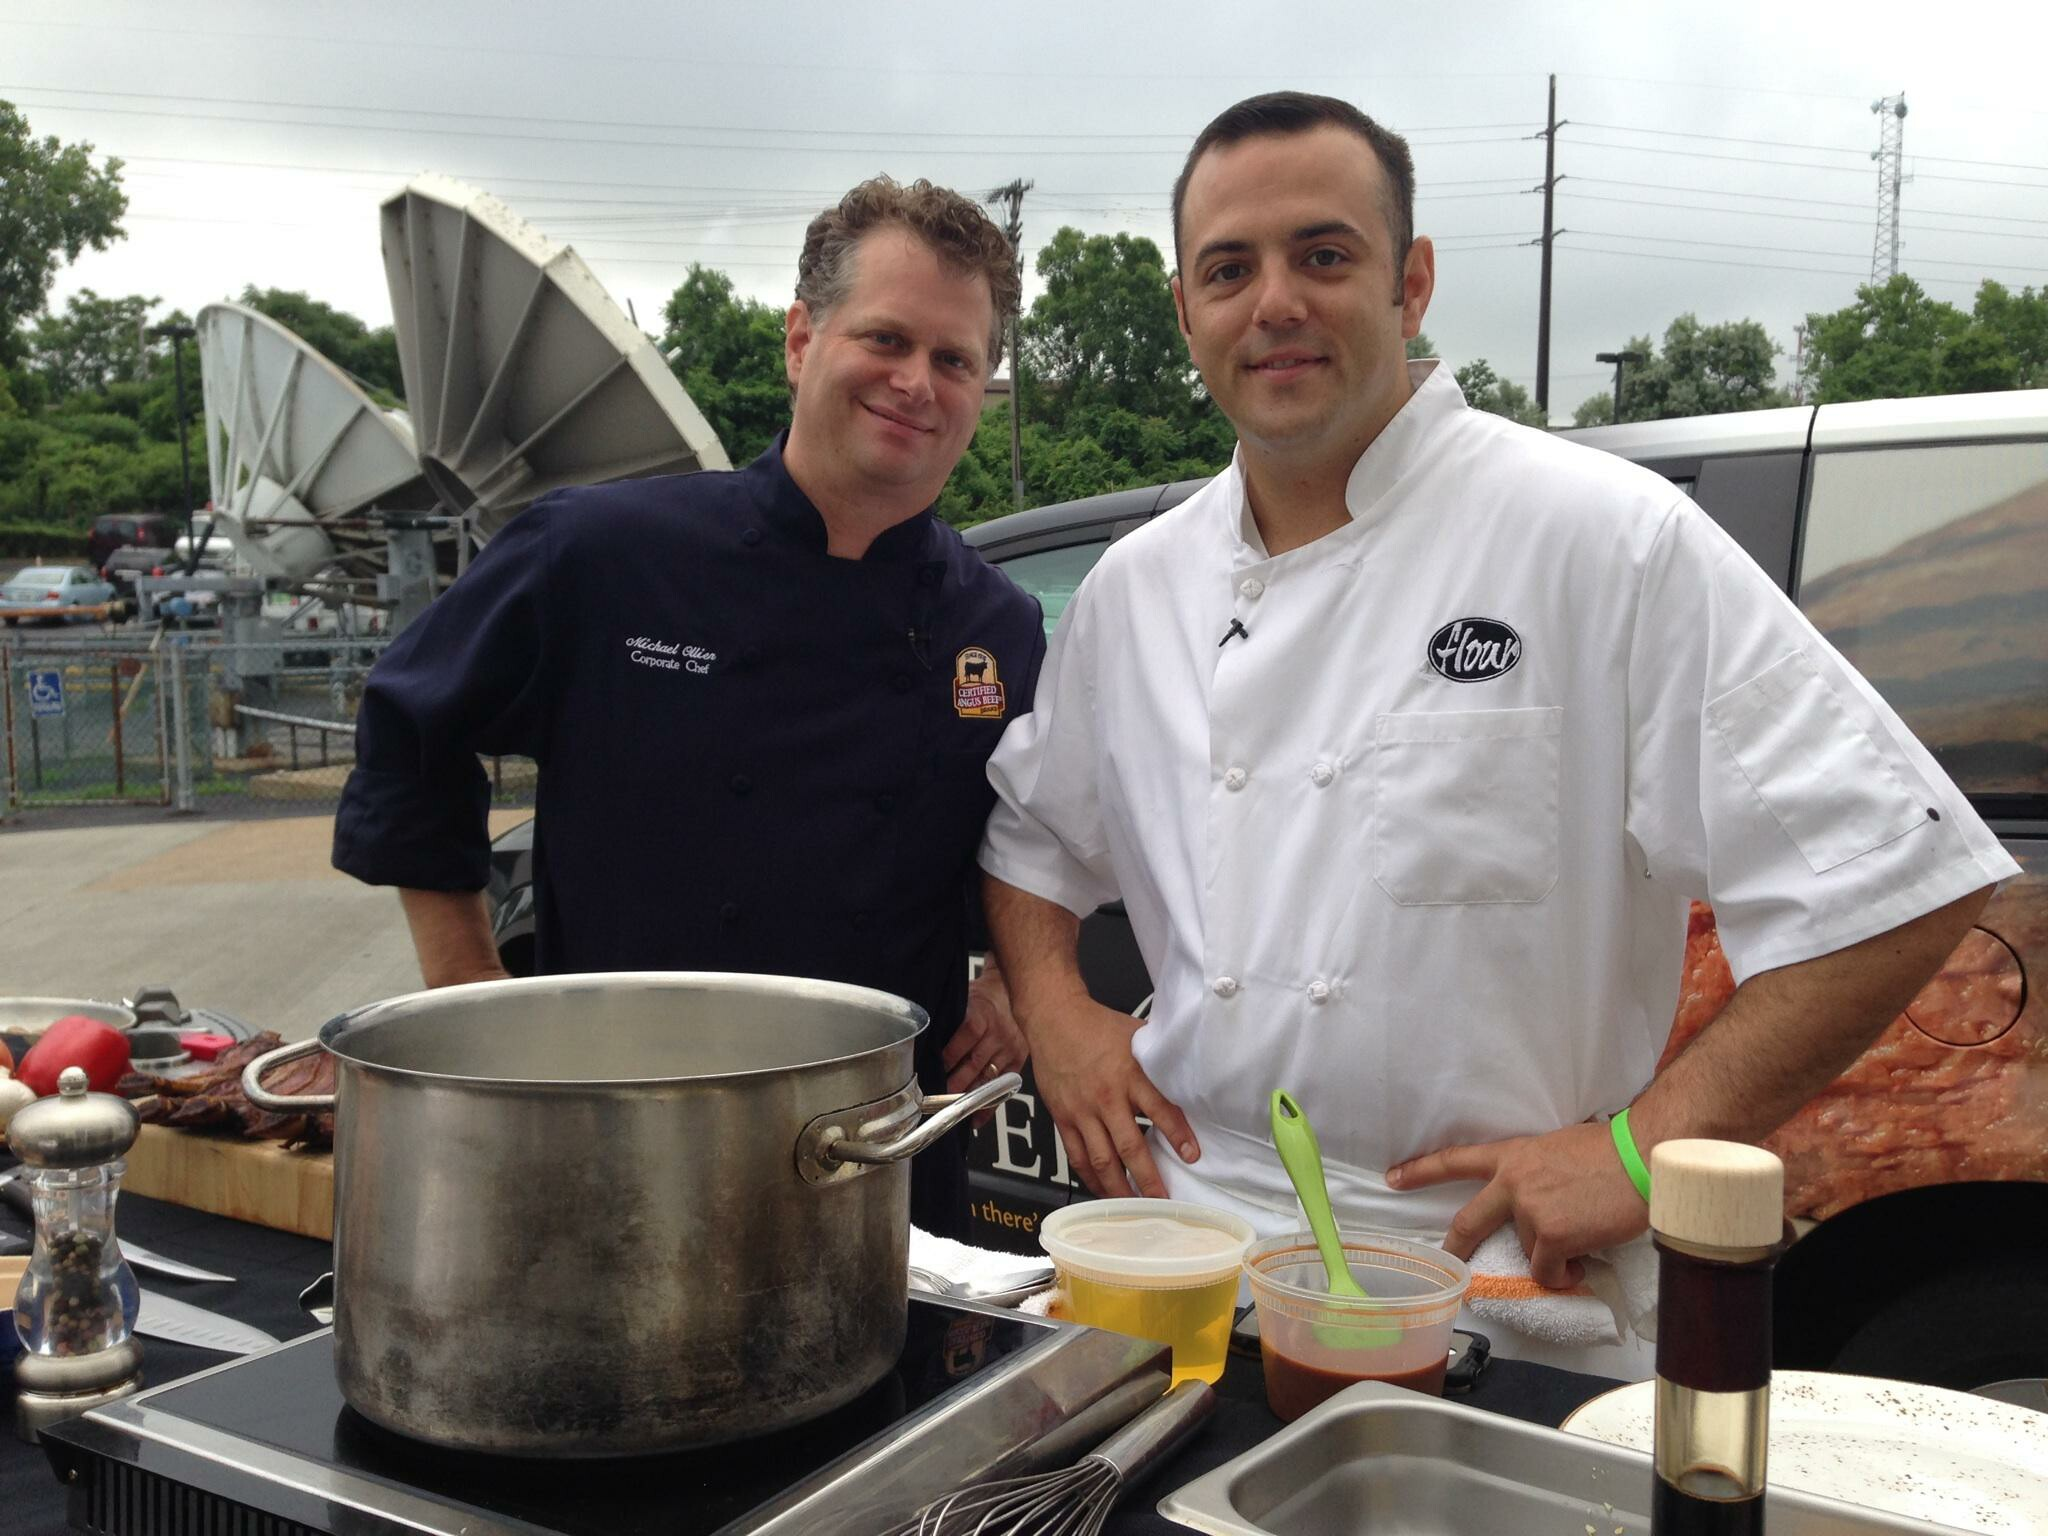 Chef Michael Ollier from Certified Angus Beef (left) and Chef Matt Mytro of Flour restaurant (right) grilling on Fox8 Cleveland.